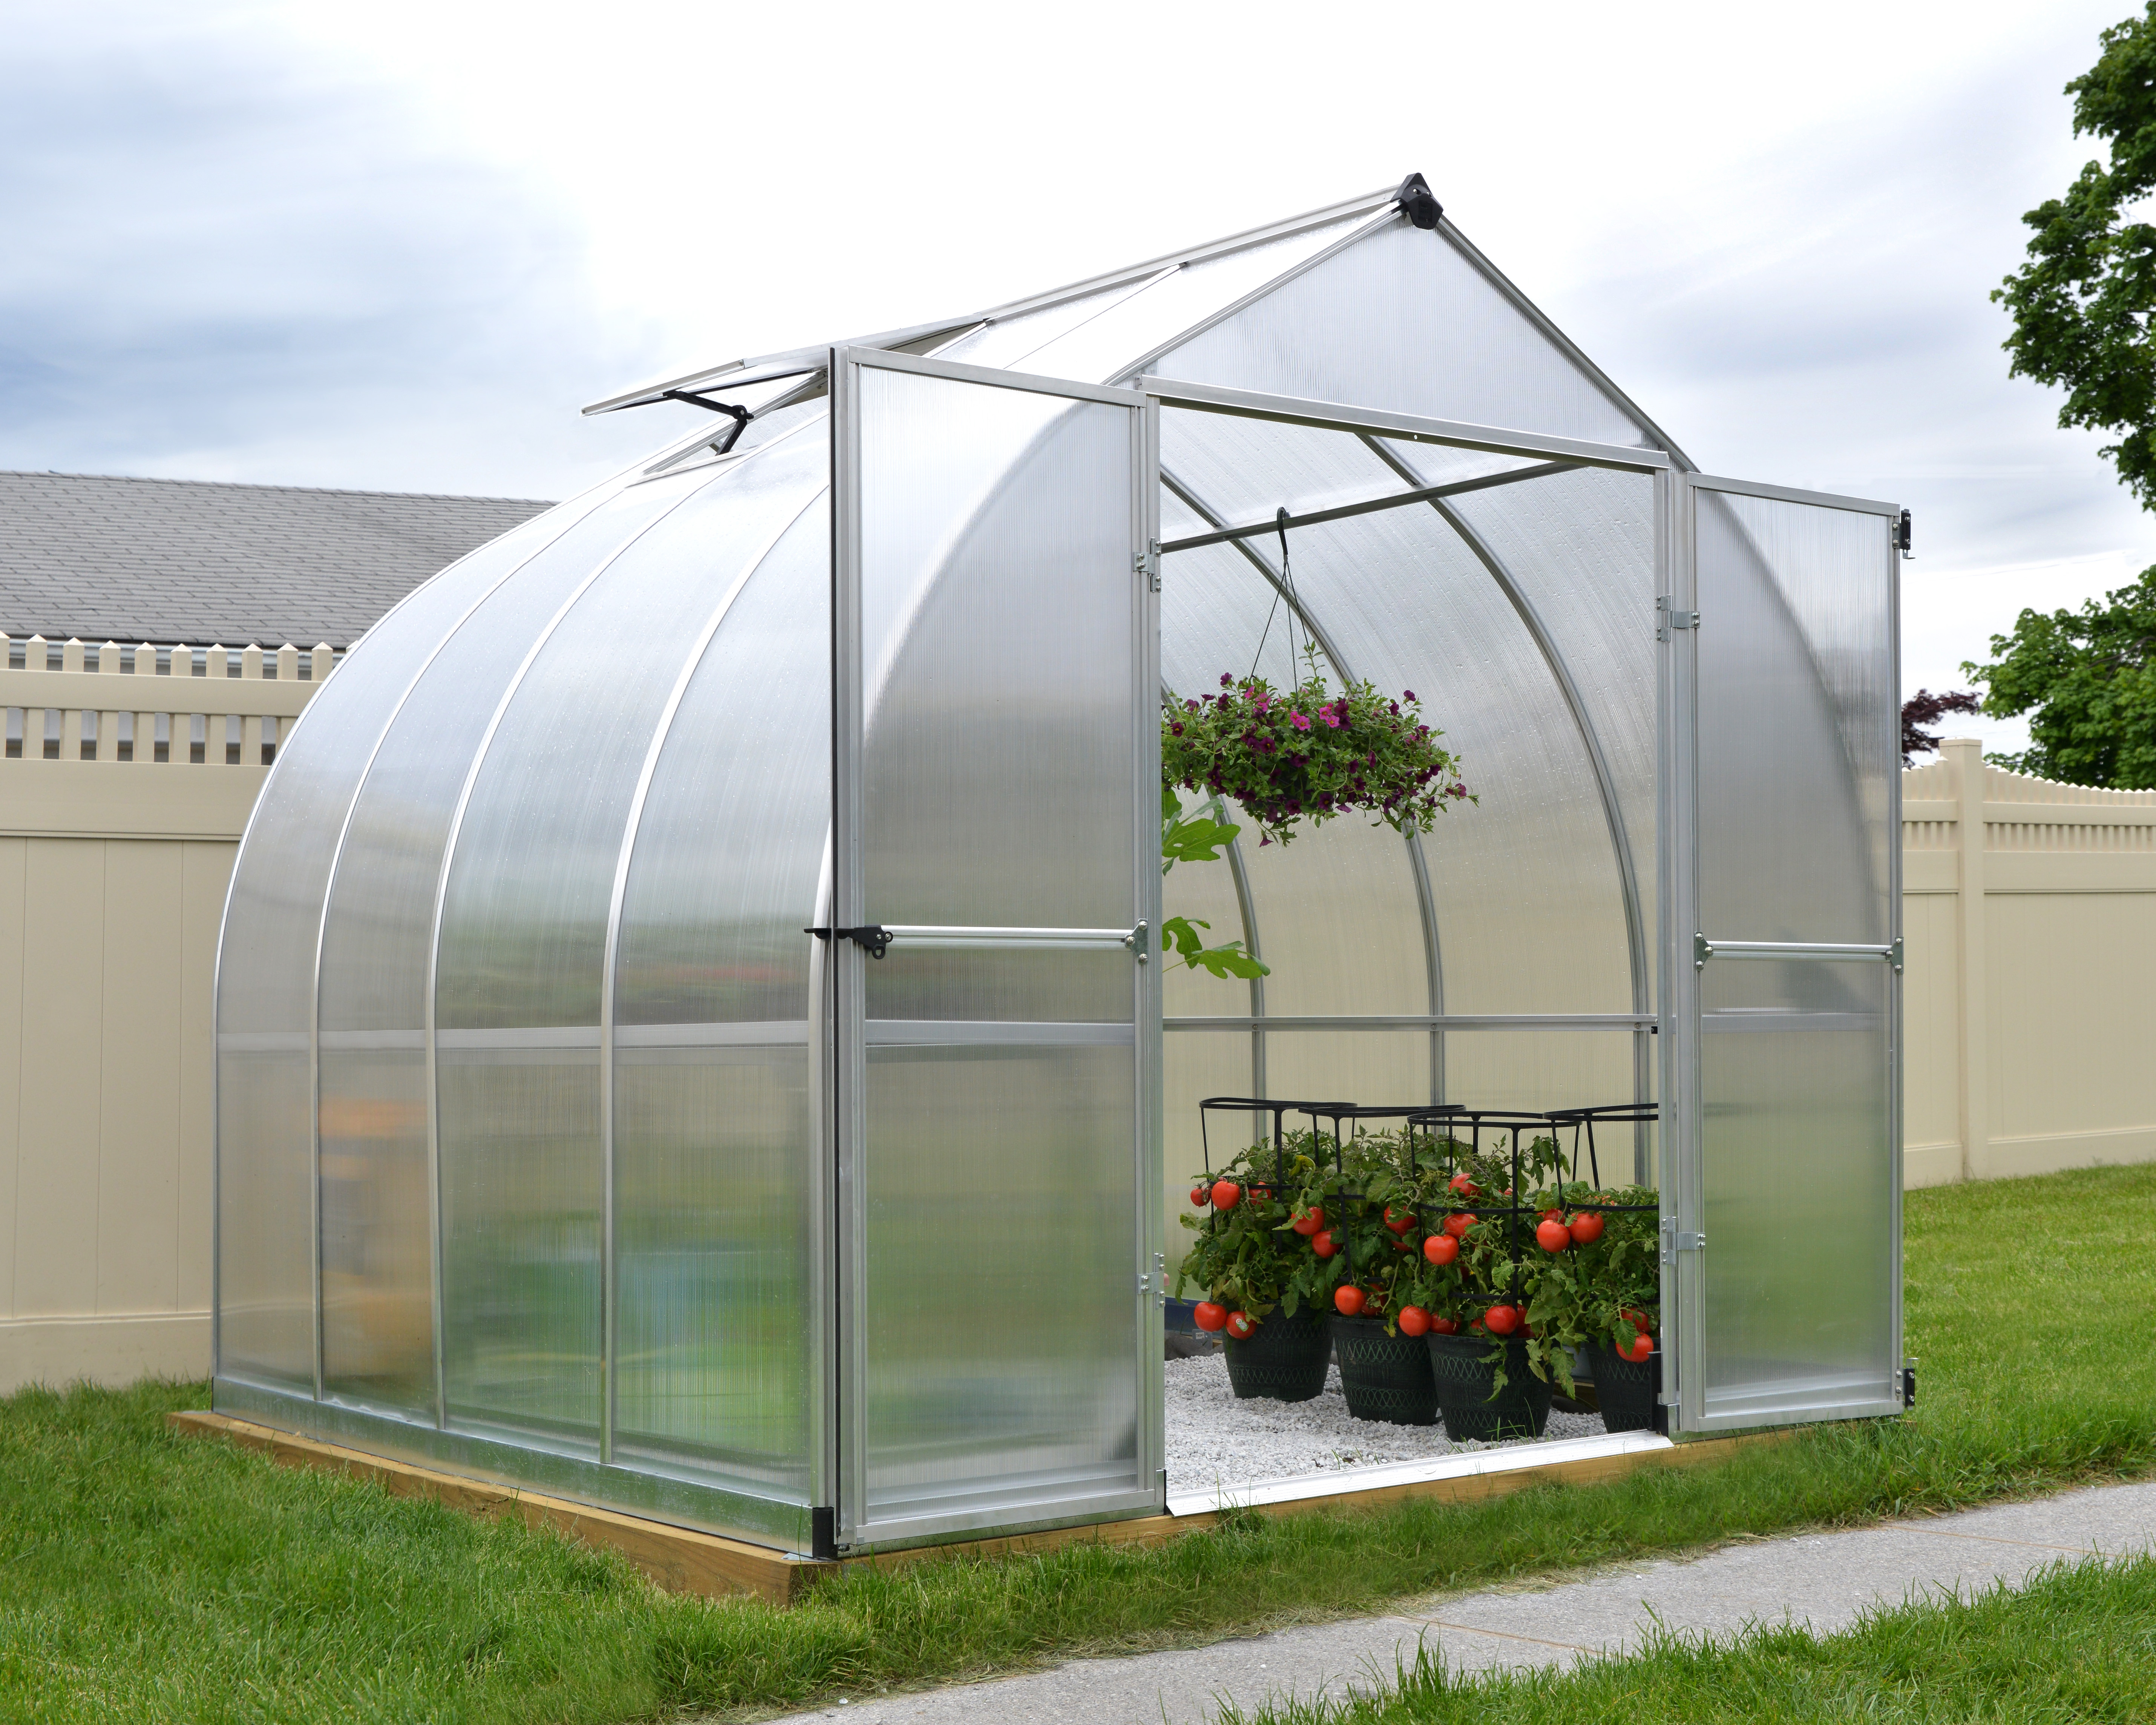 bella 8 x 8 hobby greenhouse silver 763552428103 greenhouses etc